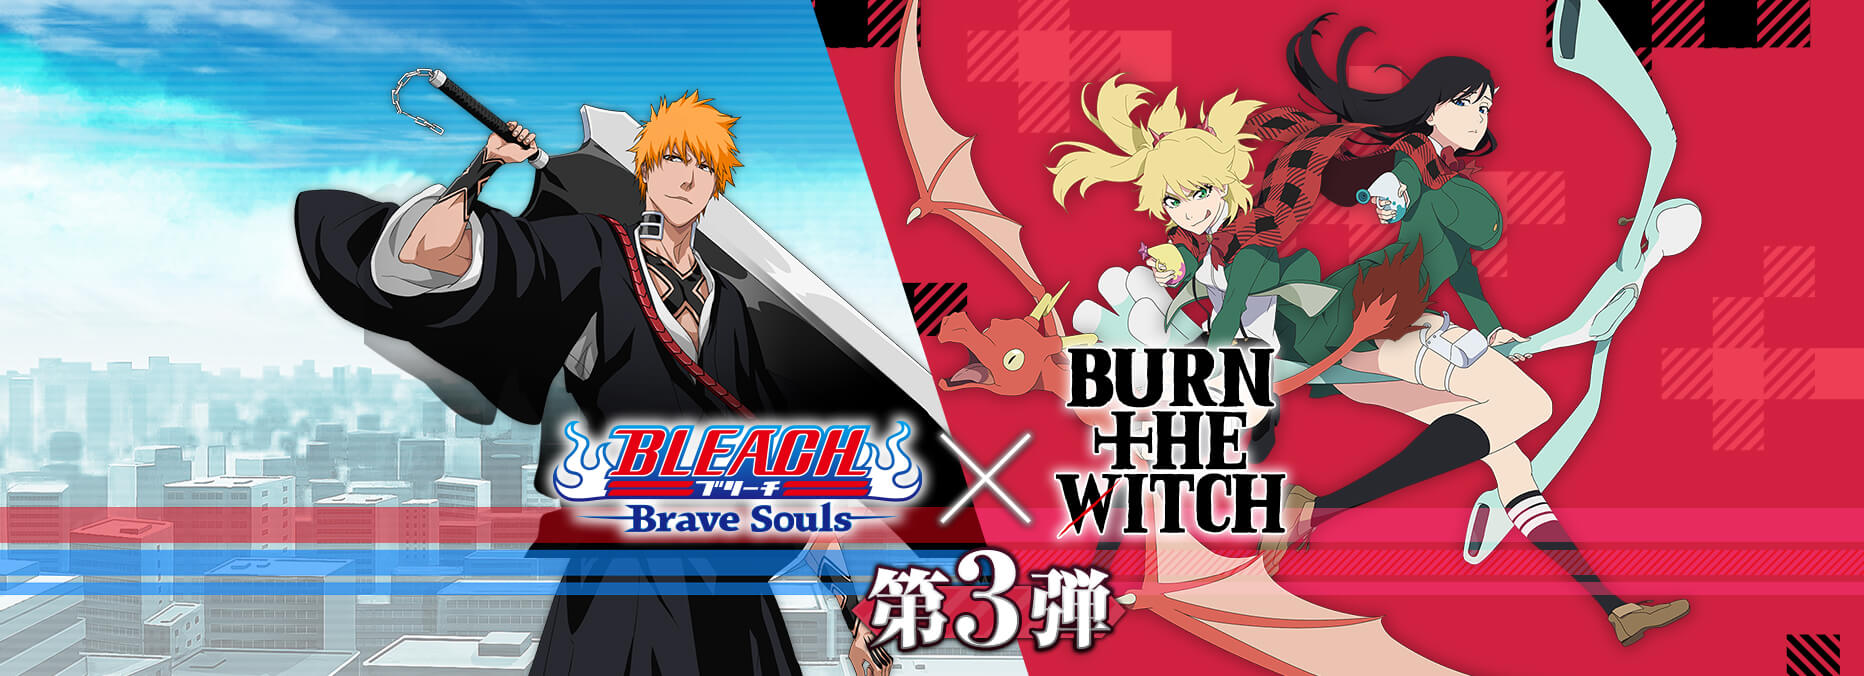 BLEACH Brave Souls × BURN THE WITCH